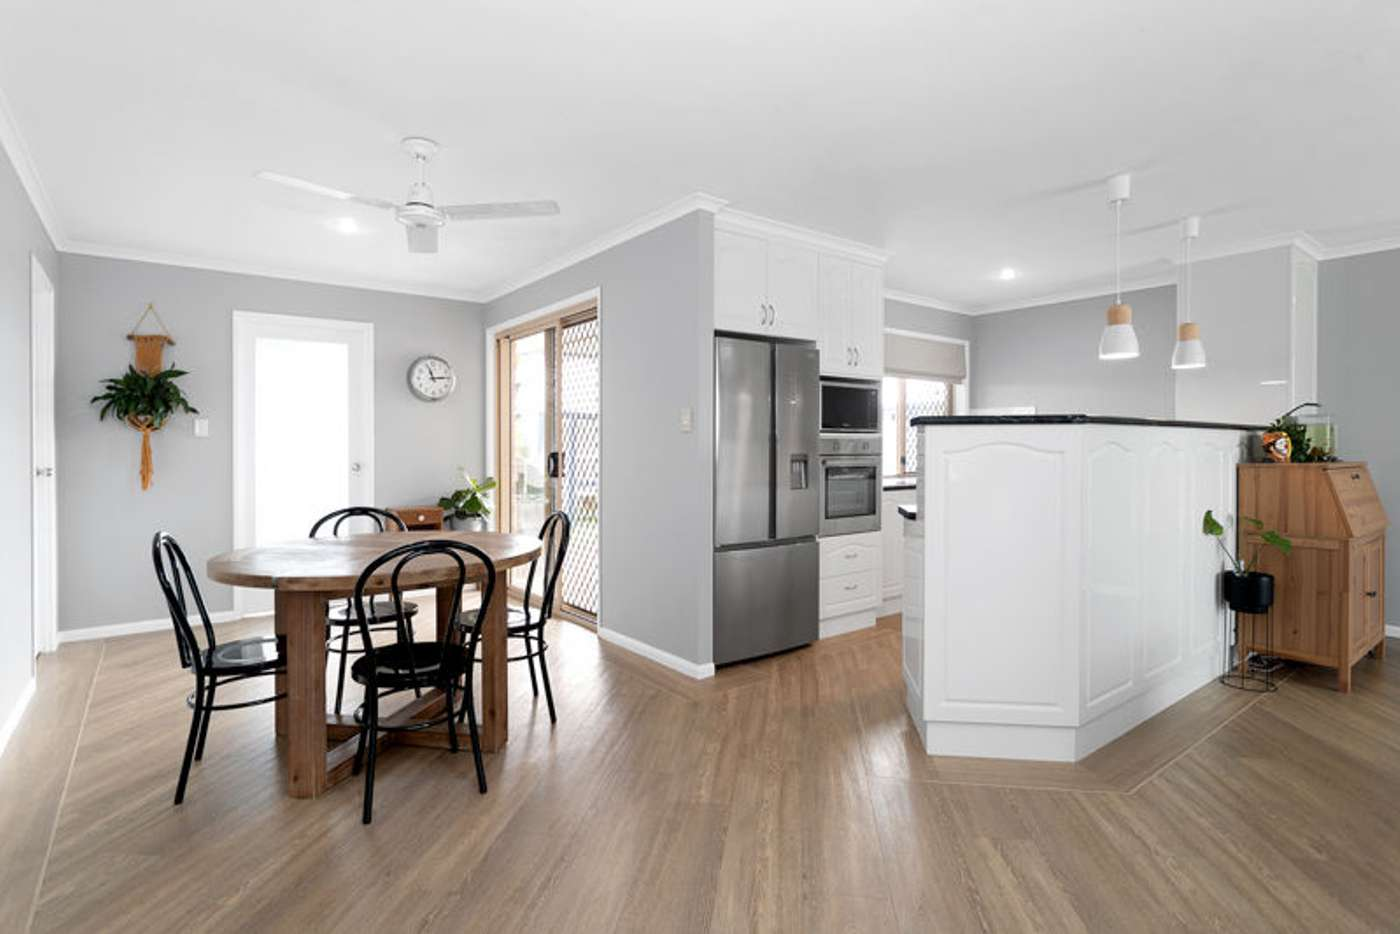 Seventh view of Homely house listing, 9 Glamis Crt, Beaconsfield QLD 4740